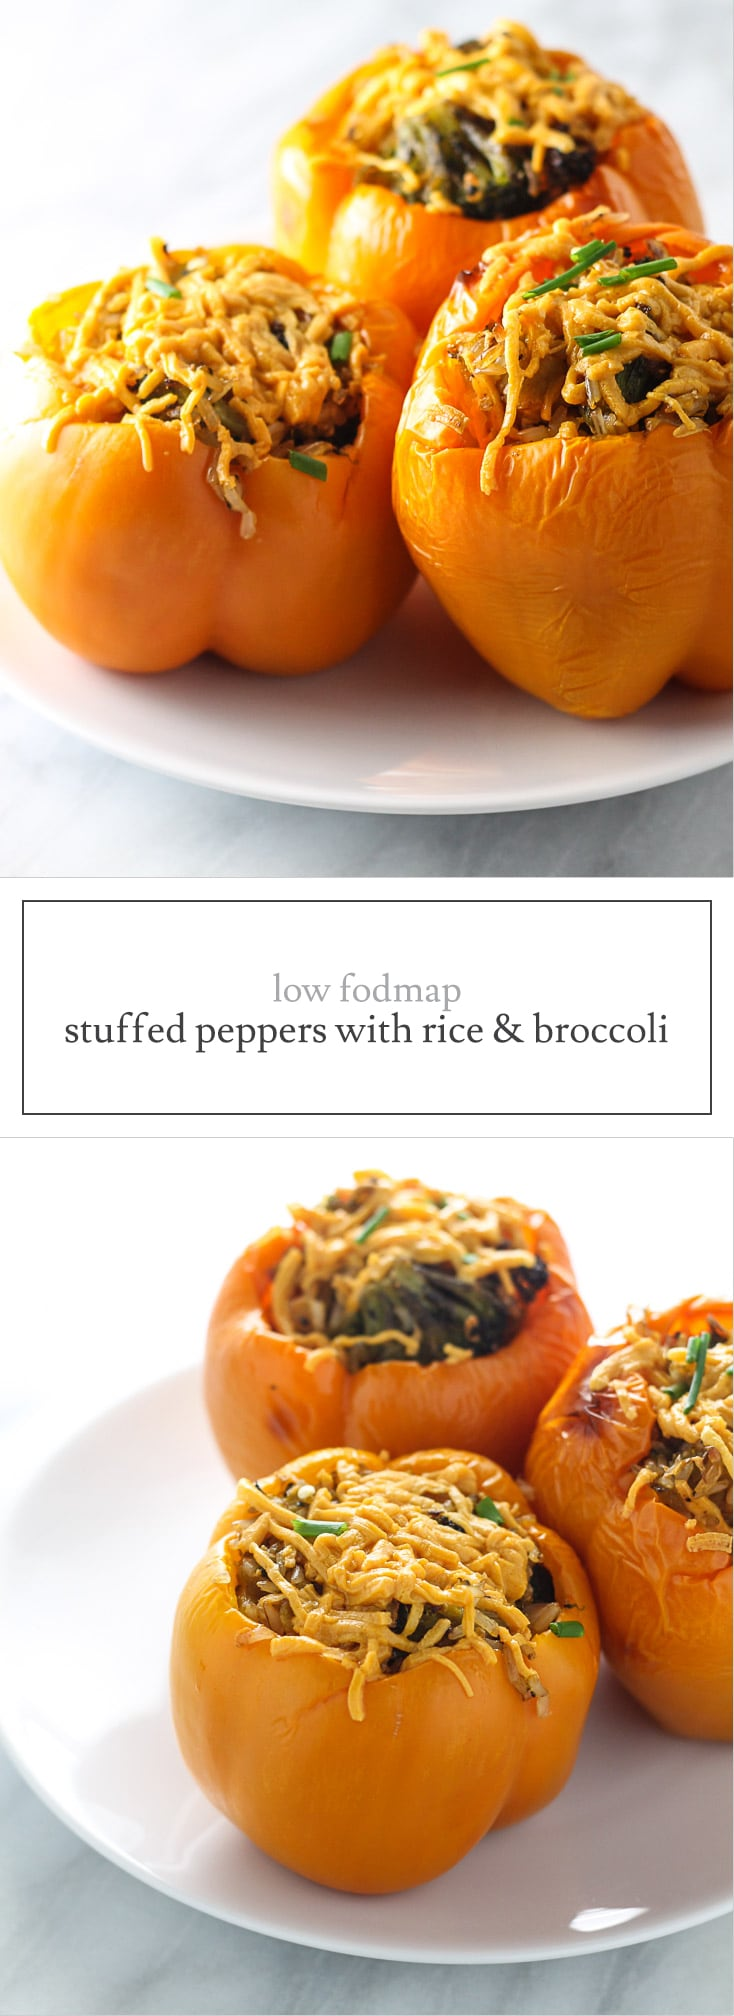 Low FODMAP Stuffed Peppers with Rice and Broccoli are a filling, vegetarian option. Choose red bell peppers if you're on the low FODMAP elimination phase.